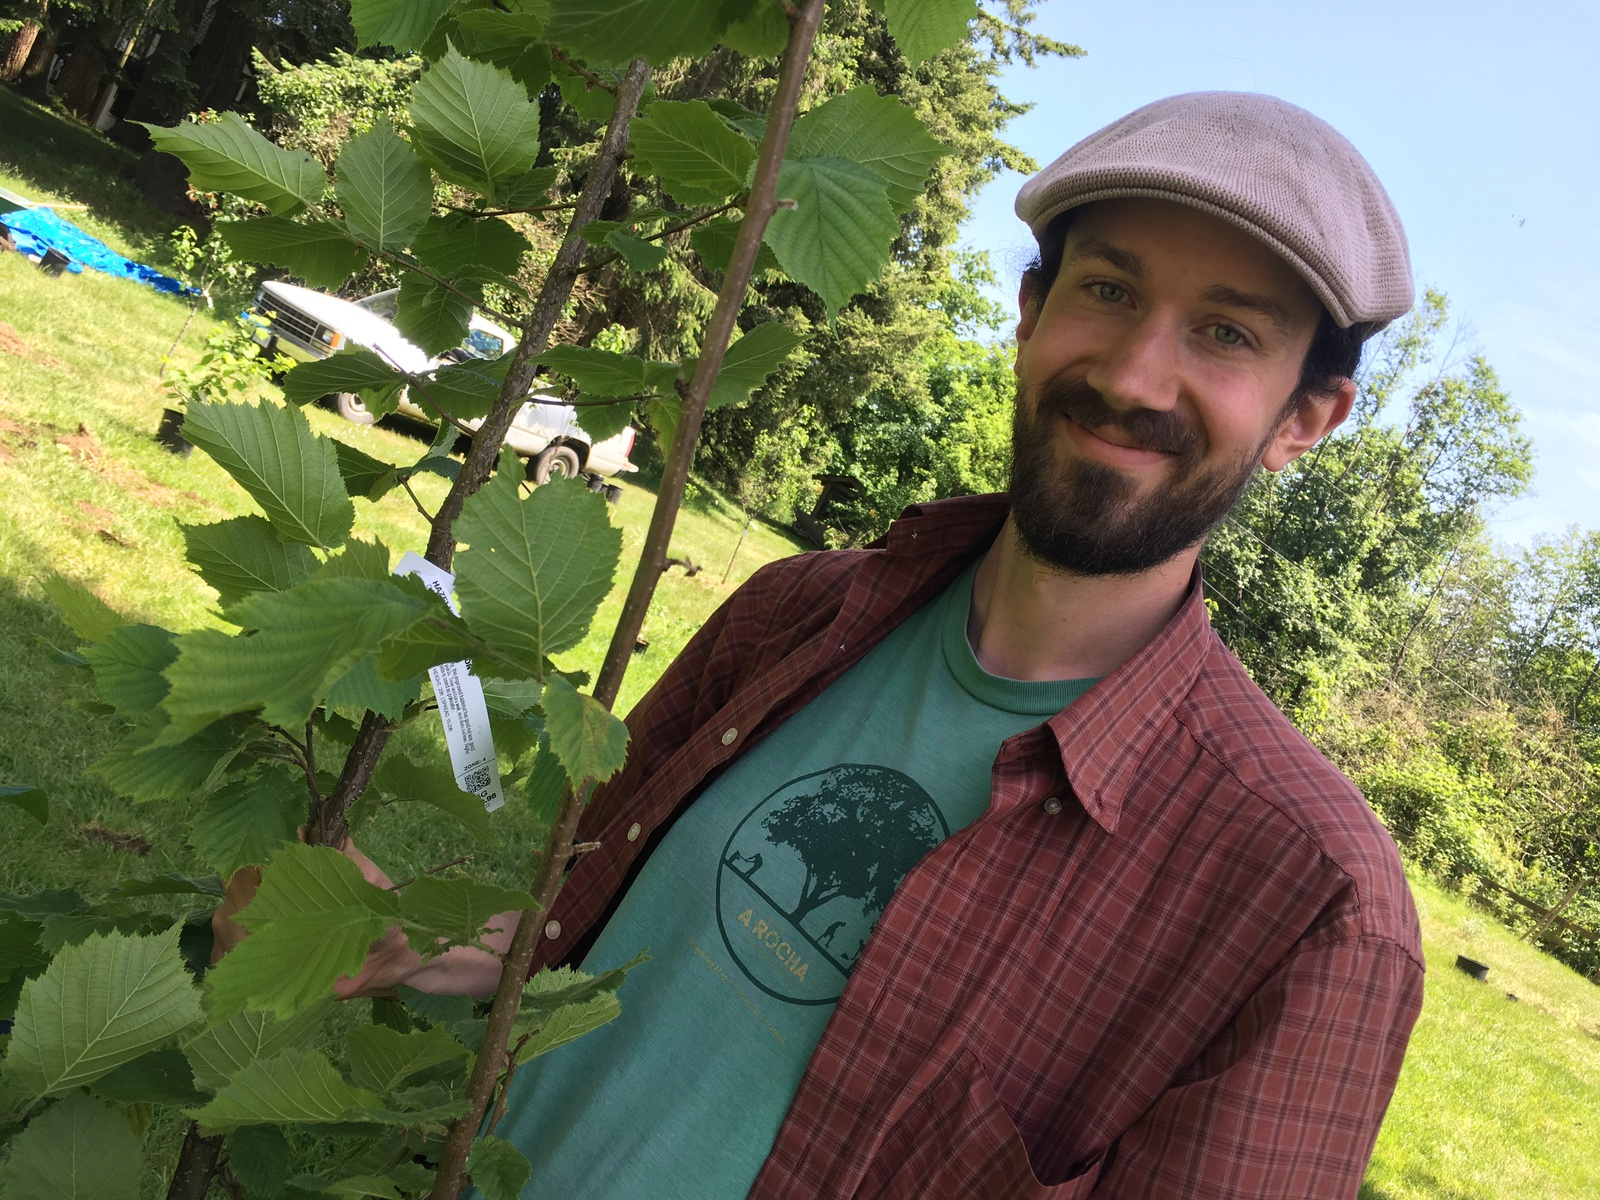 Tim Friesen poses next to tree in orchard